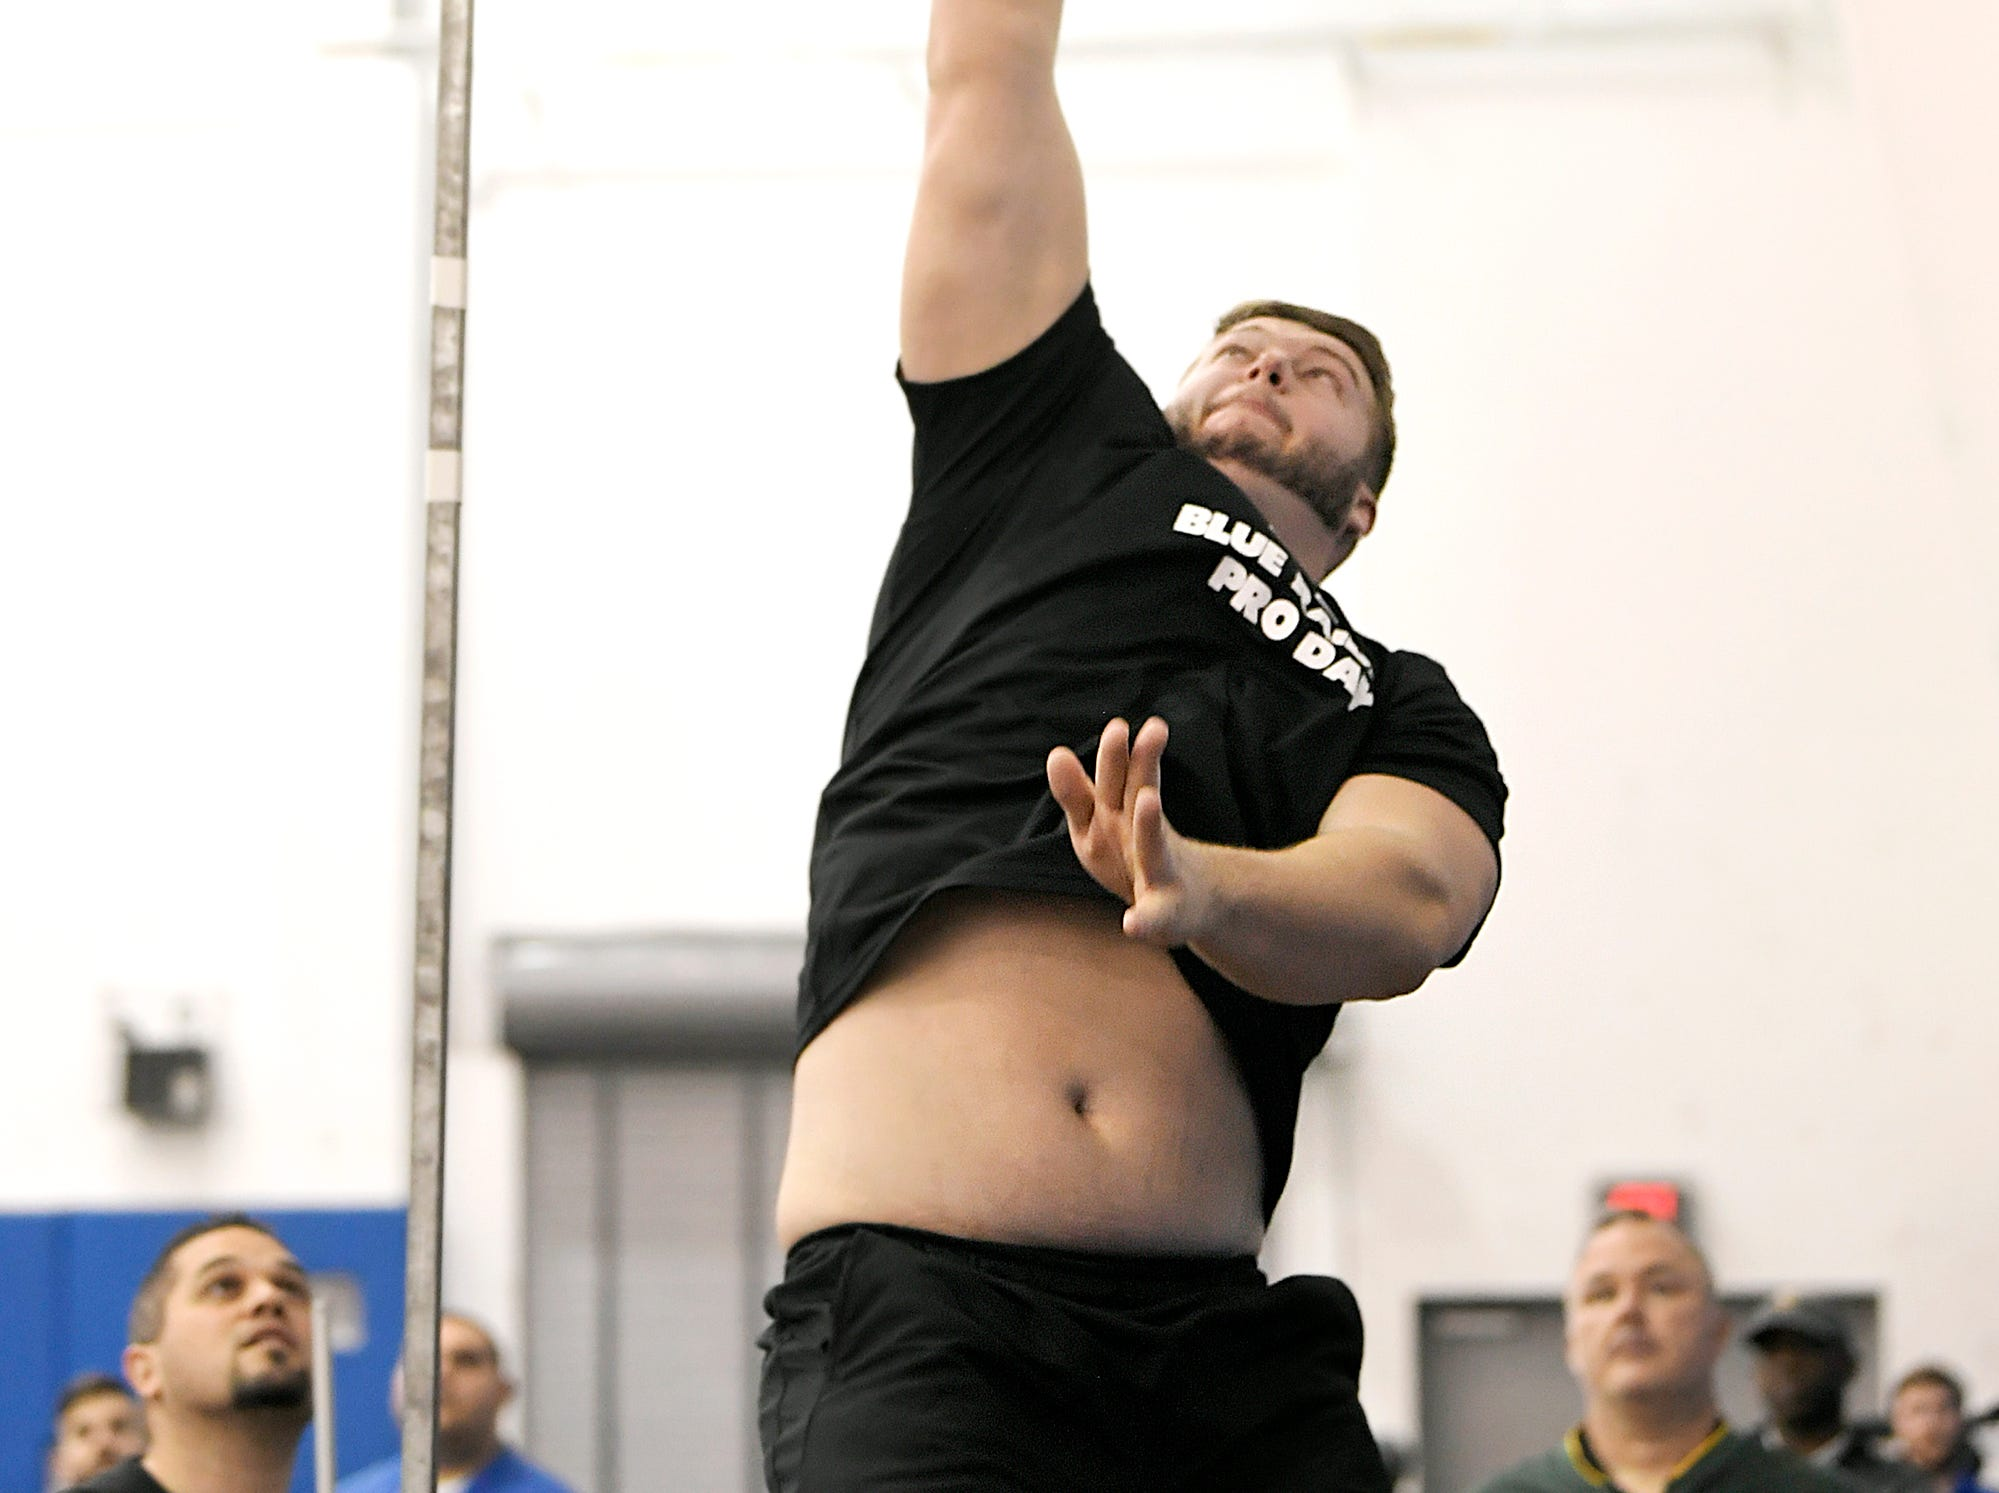 MTSU's Chandler Brewer does a vertical jump during NFL Pro Day which was held at TSU in Nashville on Monday, March, 11, 2019.